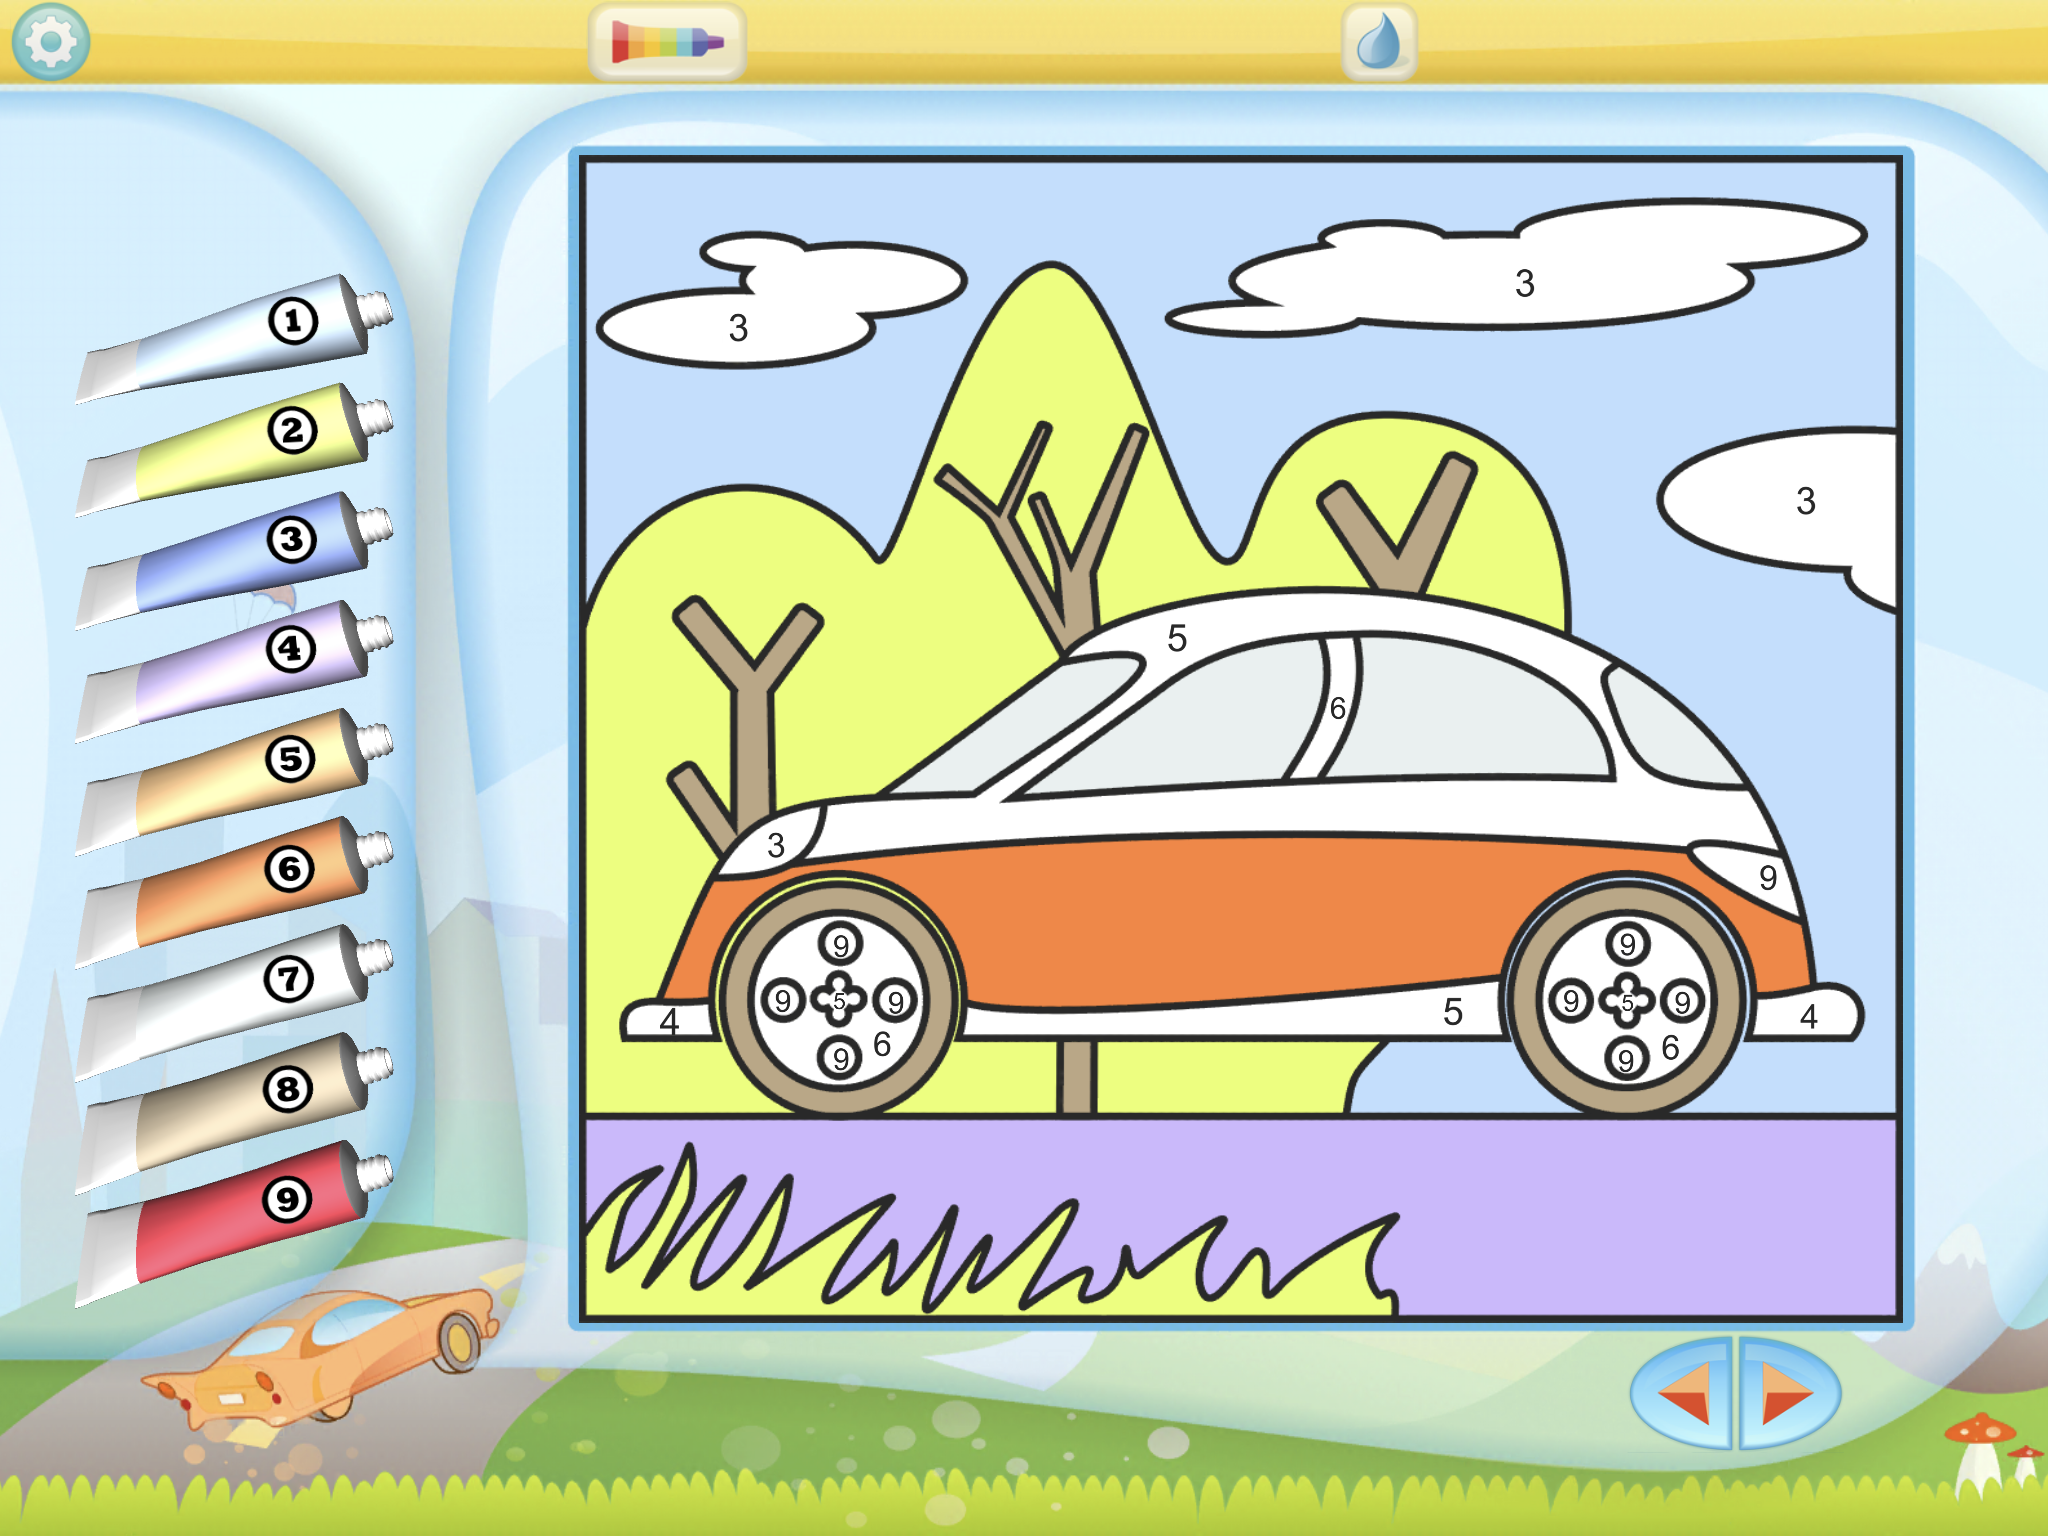 Color By Numbers - Vehicles by Kedronic UAB, recommended app for people living with dementia